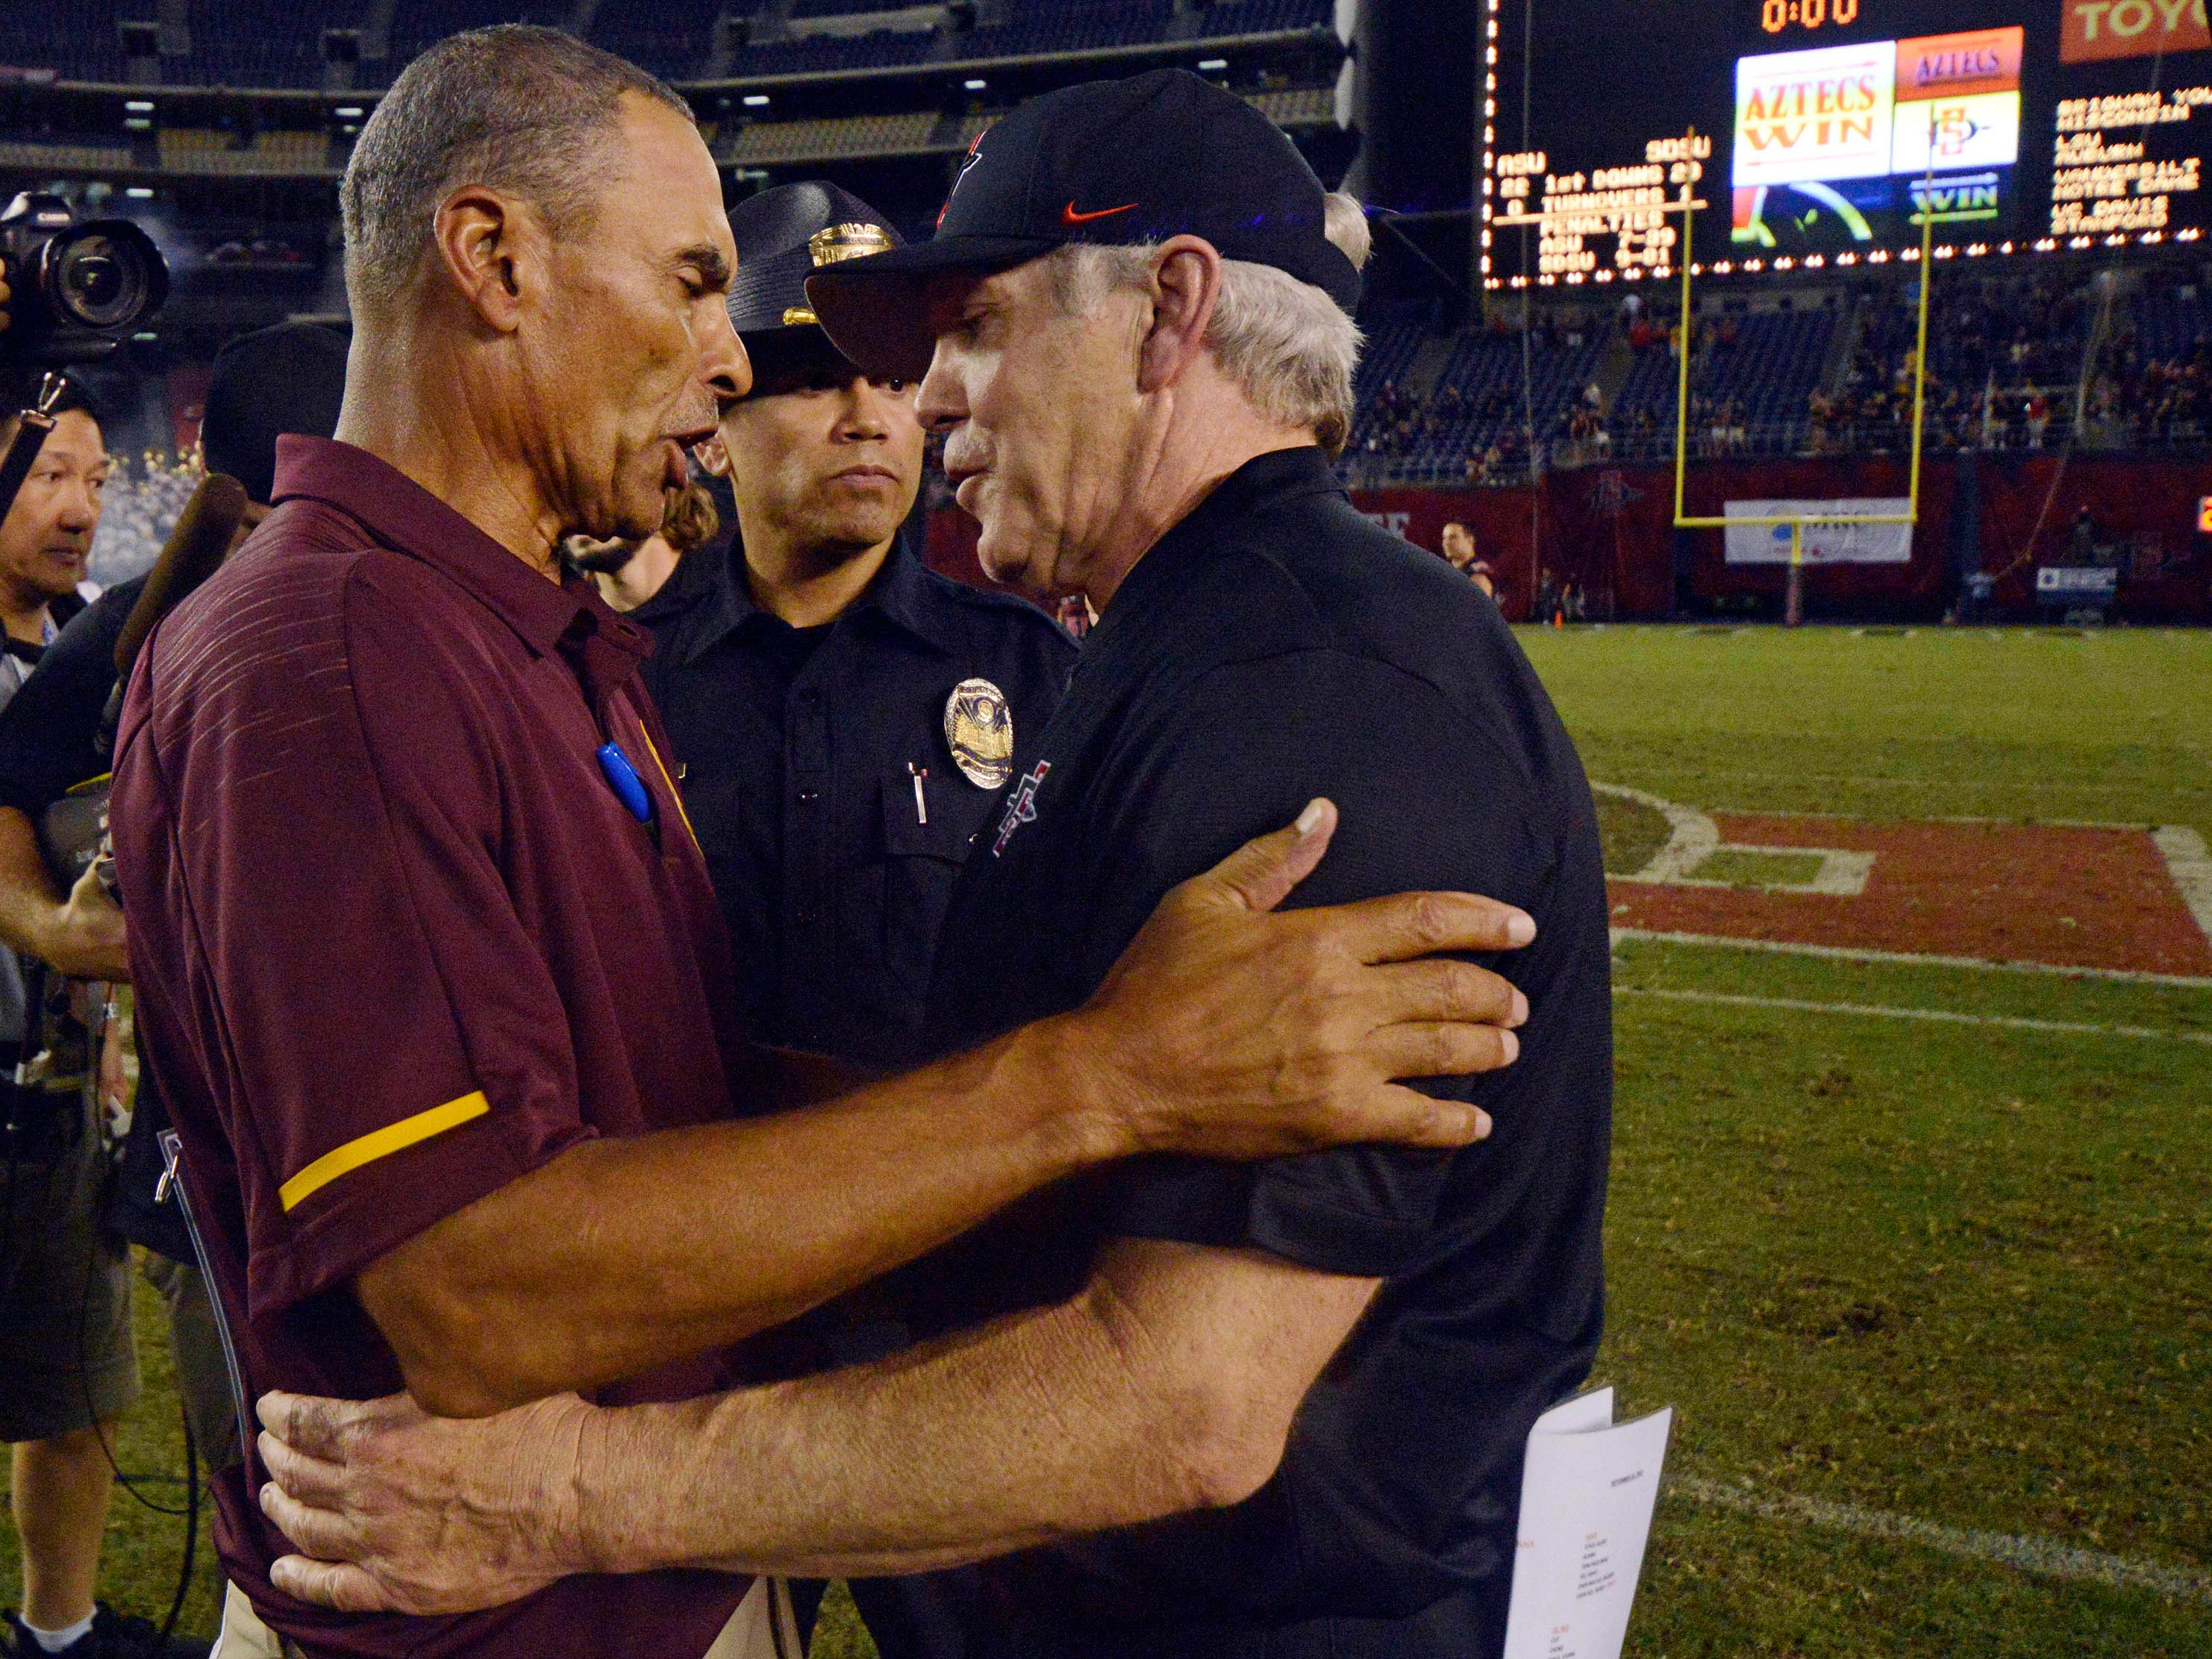 Sep 15, 2018; San Diego, CA, USA; Arizona State Sun Devils head coach Herm Edwards (left) and San Diego State Aztecs head coach Rocky Long talk after a 28-21 win for the Aztecs at SDCCU Stadium. Mandatory Credit: Jake Roth-USA TODAY Sports